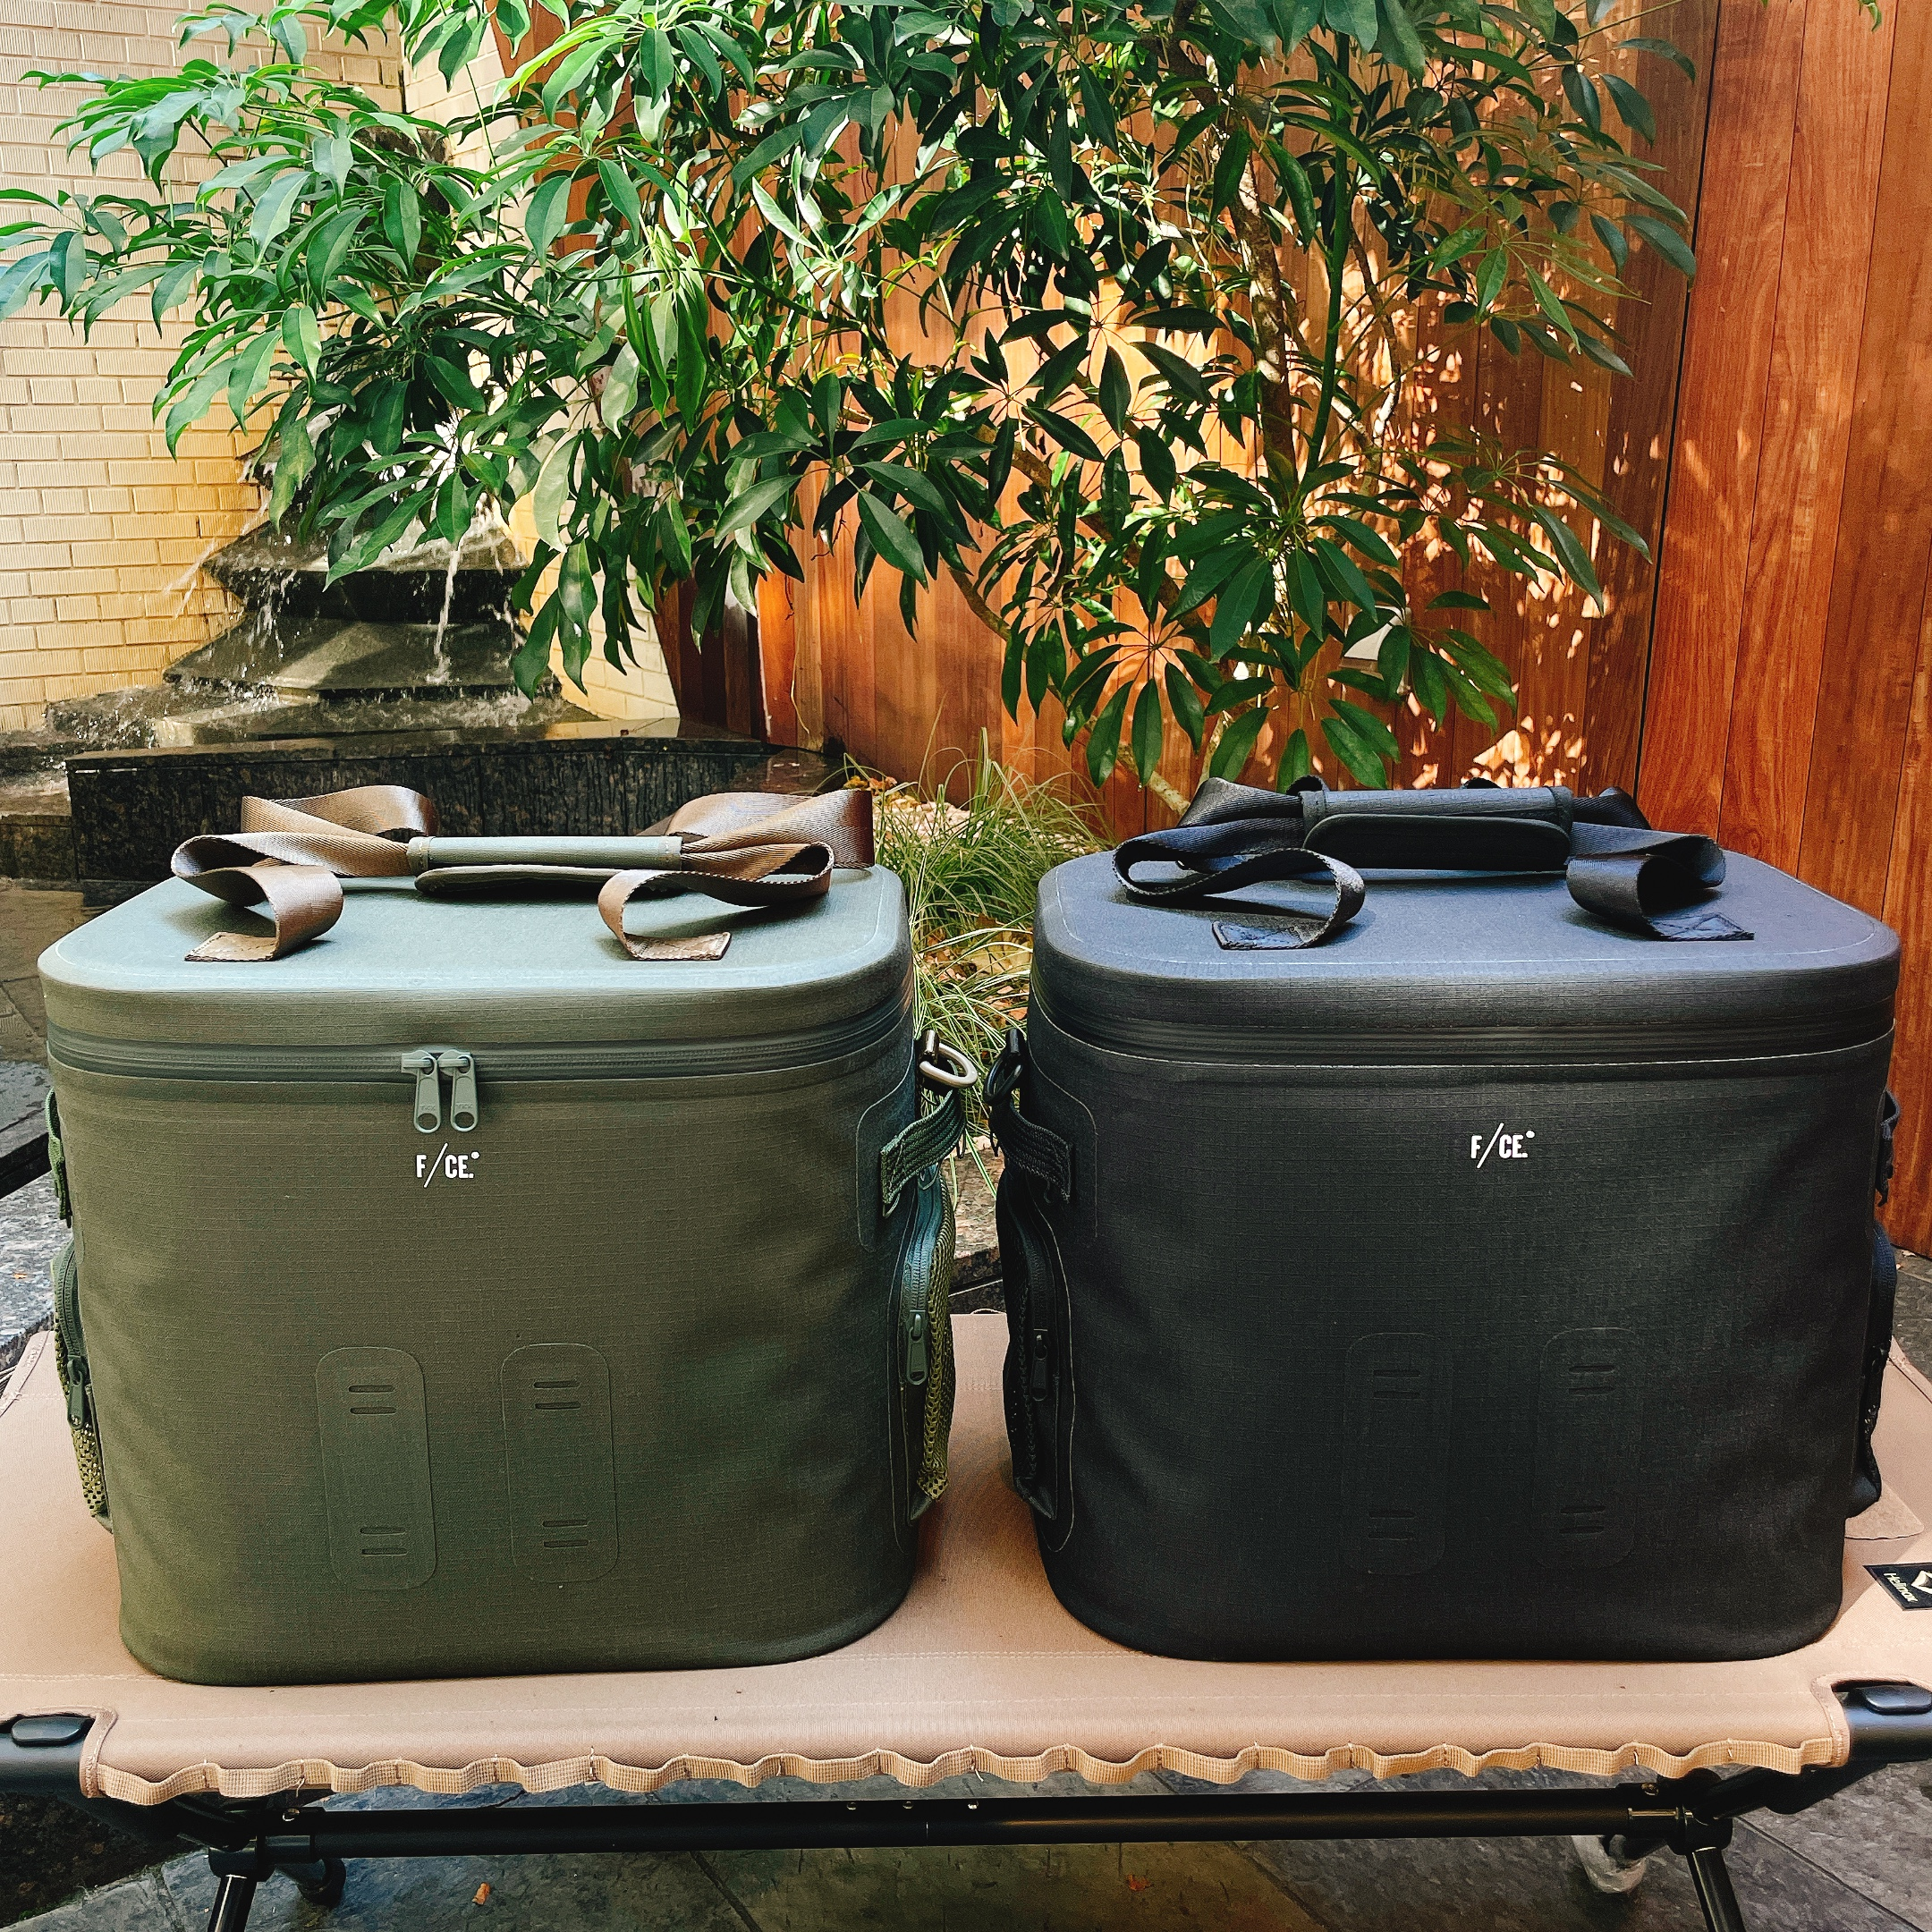 #174 -F/CE COOLER CONTAINER-